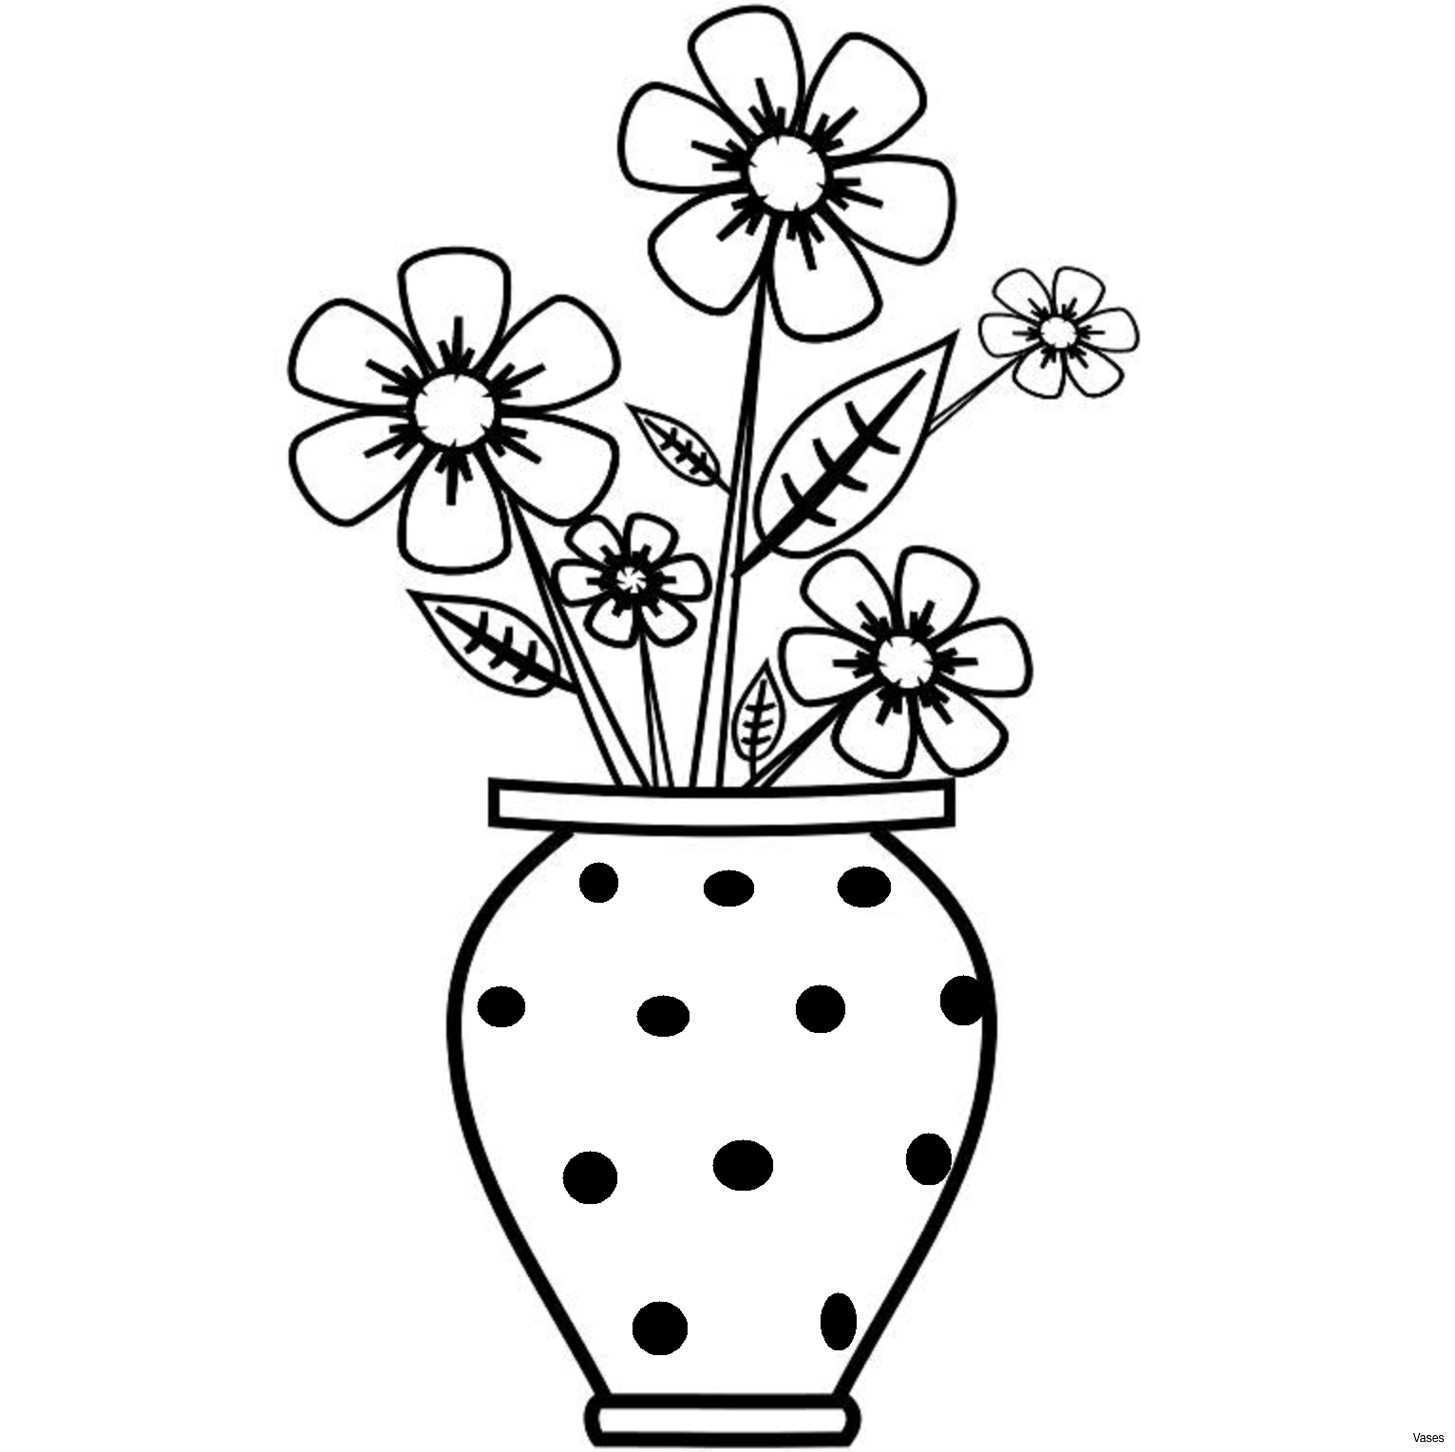 Black and White Art Inspirational Will Clipart Colored Flower Vase Clip Arth Vases Art Infoi 0d